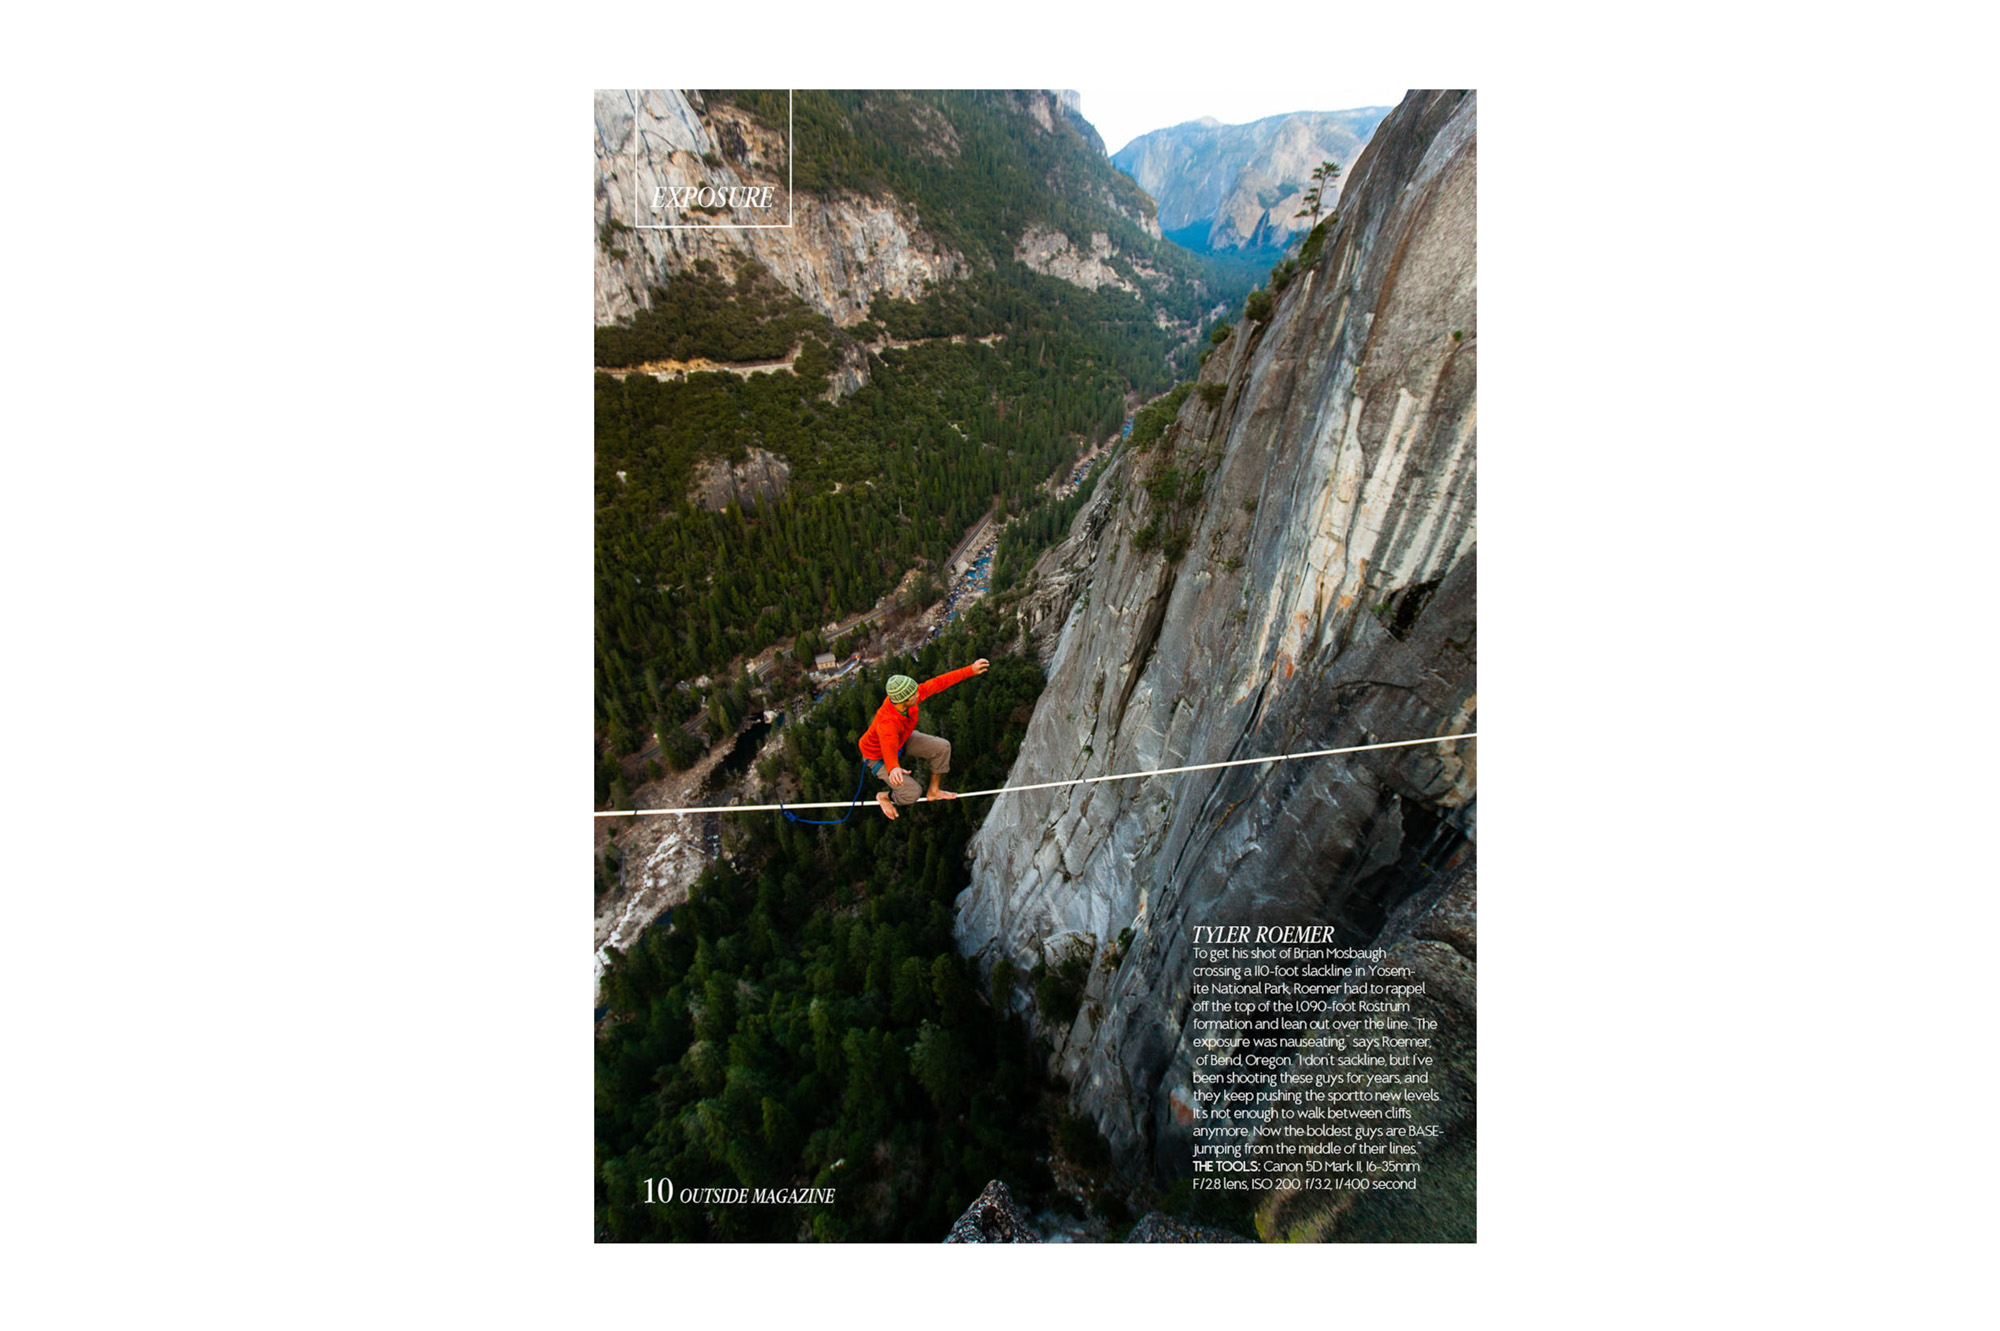 outside-magazine-exposure-highline-yosemite-national-park.JPG